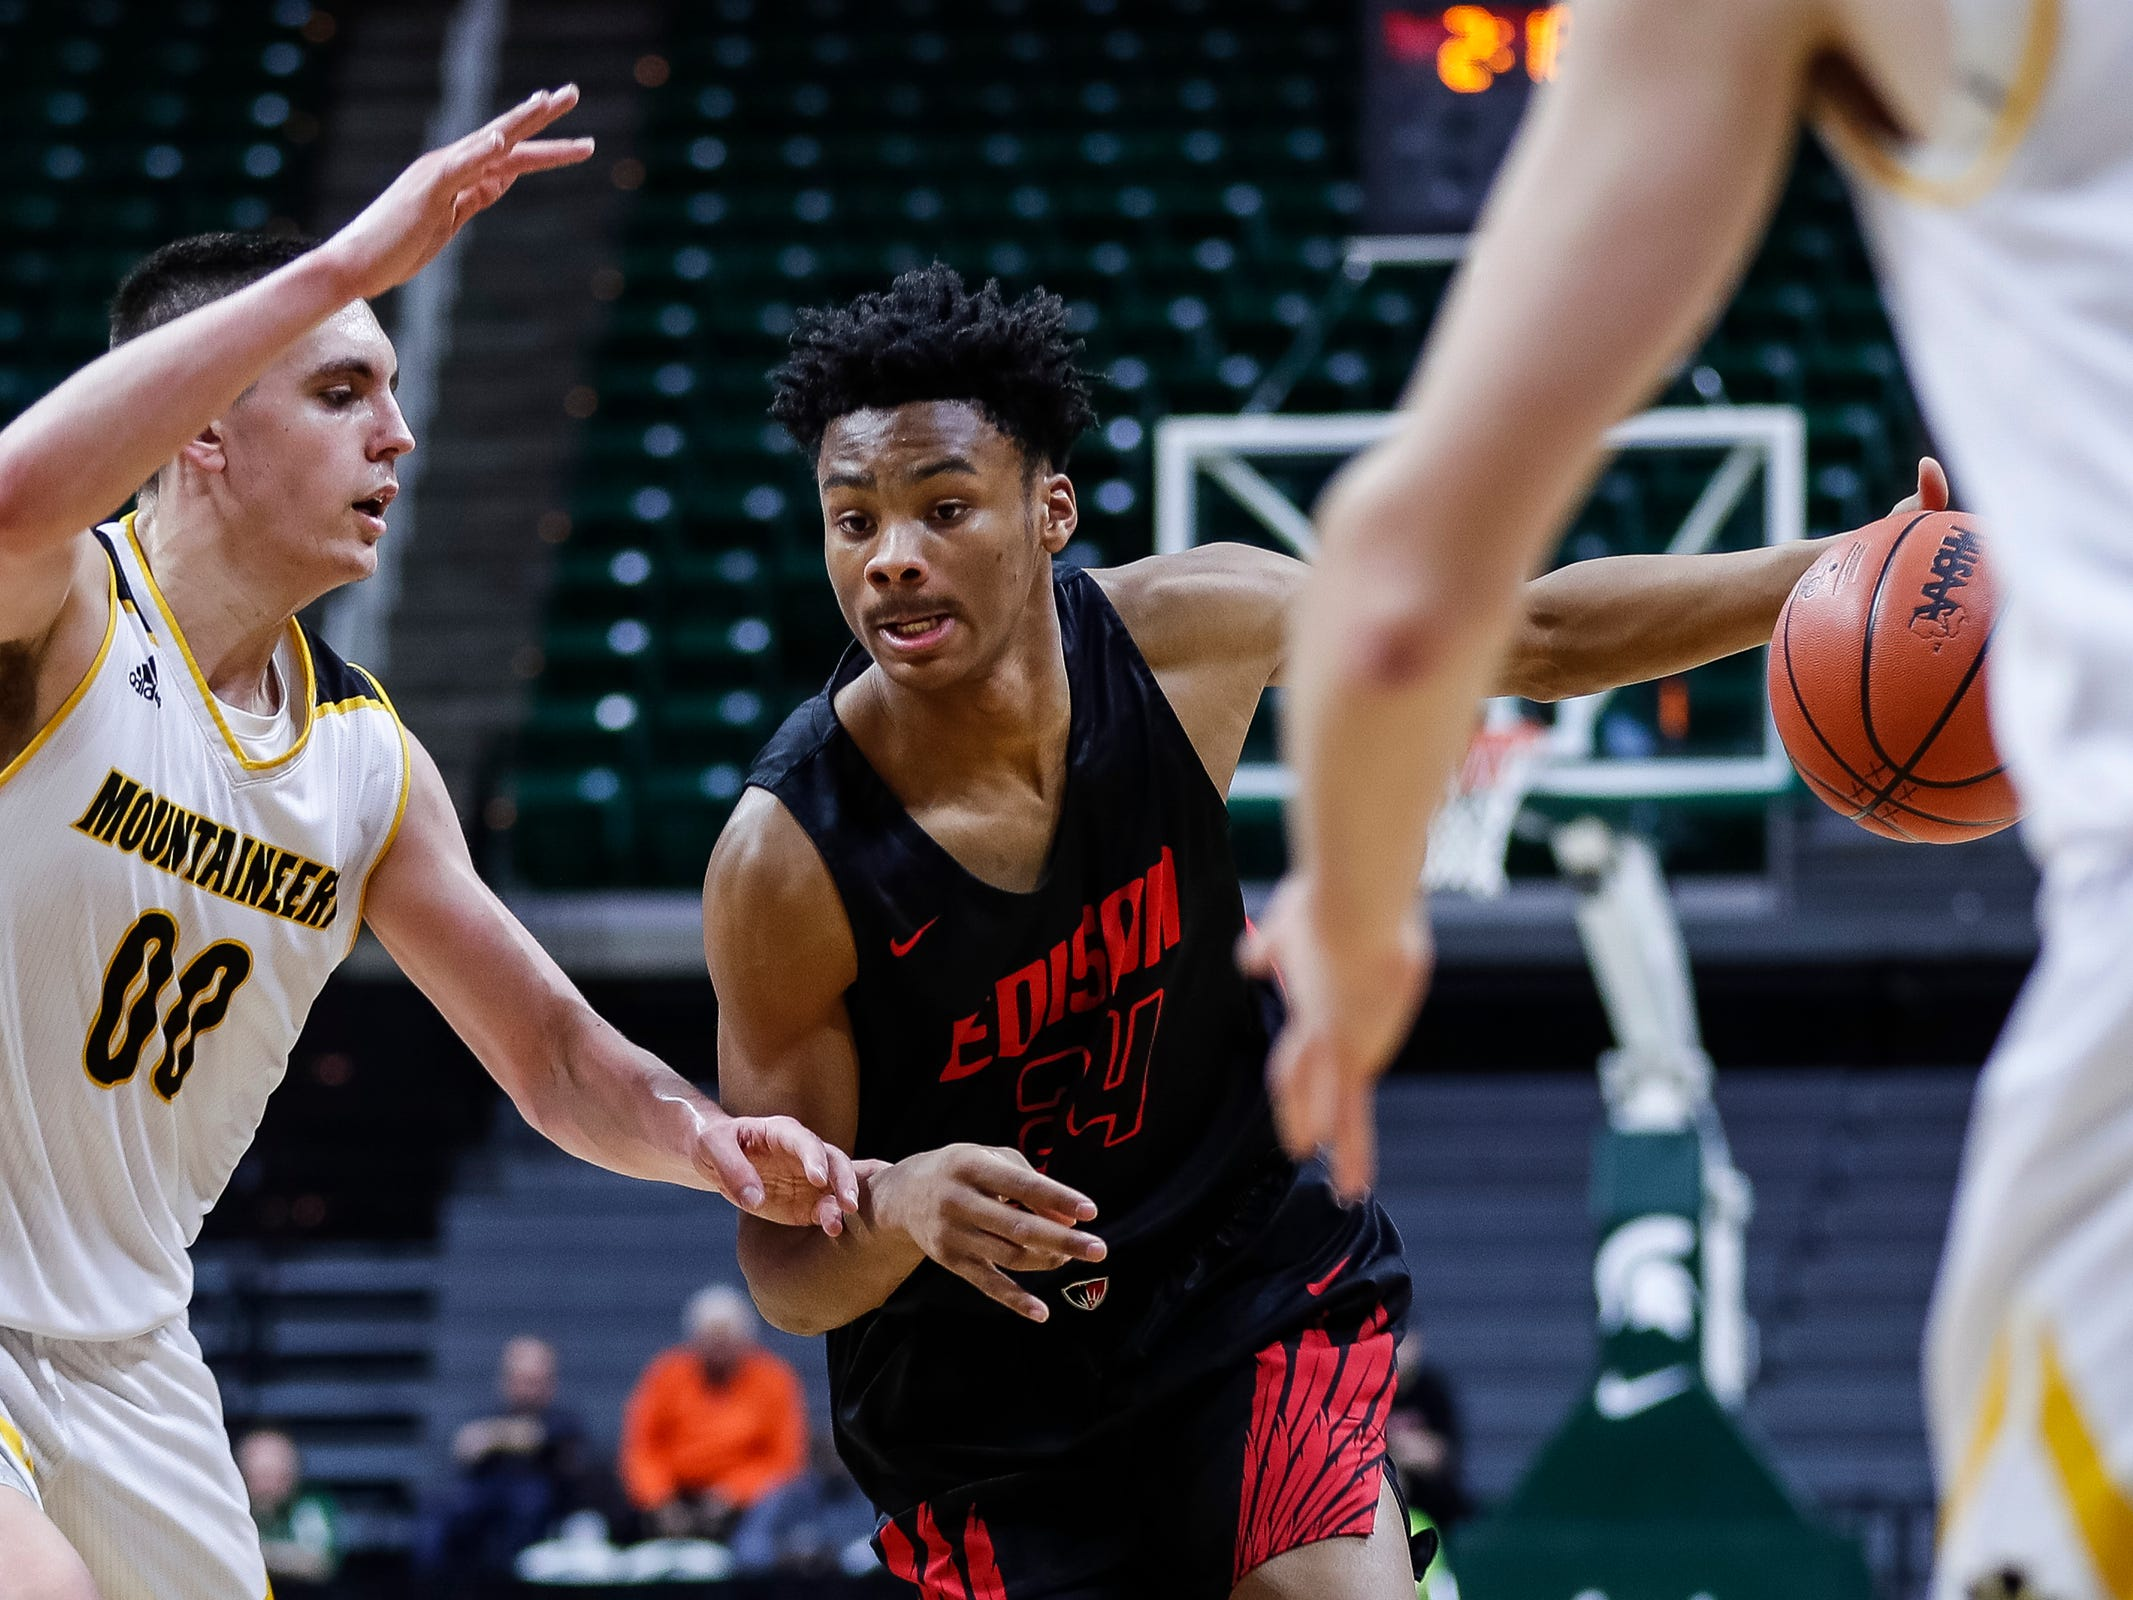 Detroit Edison's Dylan Bell dribbles against Iron Mountain's Foster Wonders during the first half of MHSAA Division 3 semifinal at the Breslin Center in East Lansing, Thursday, March 14, 2019.